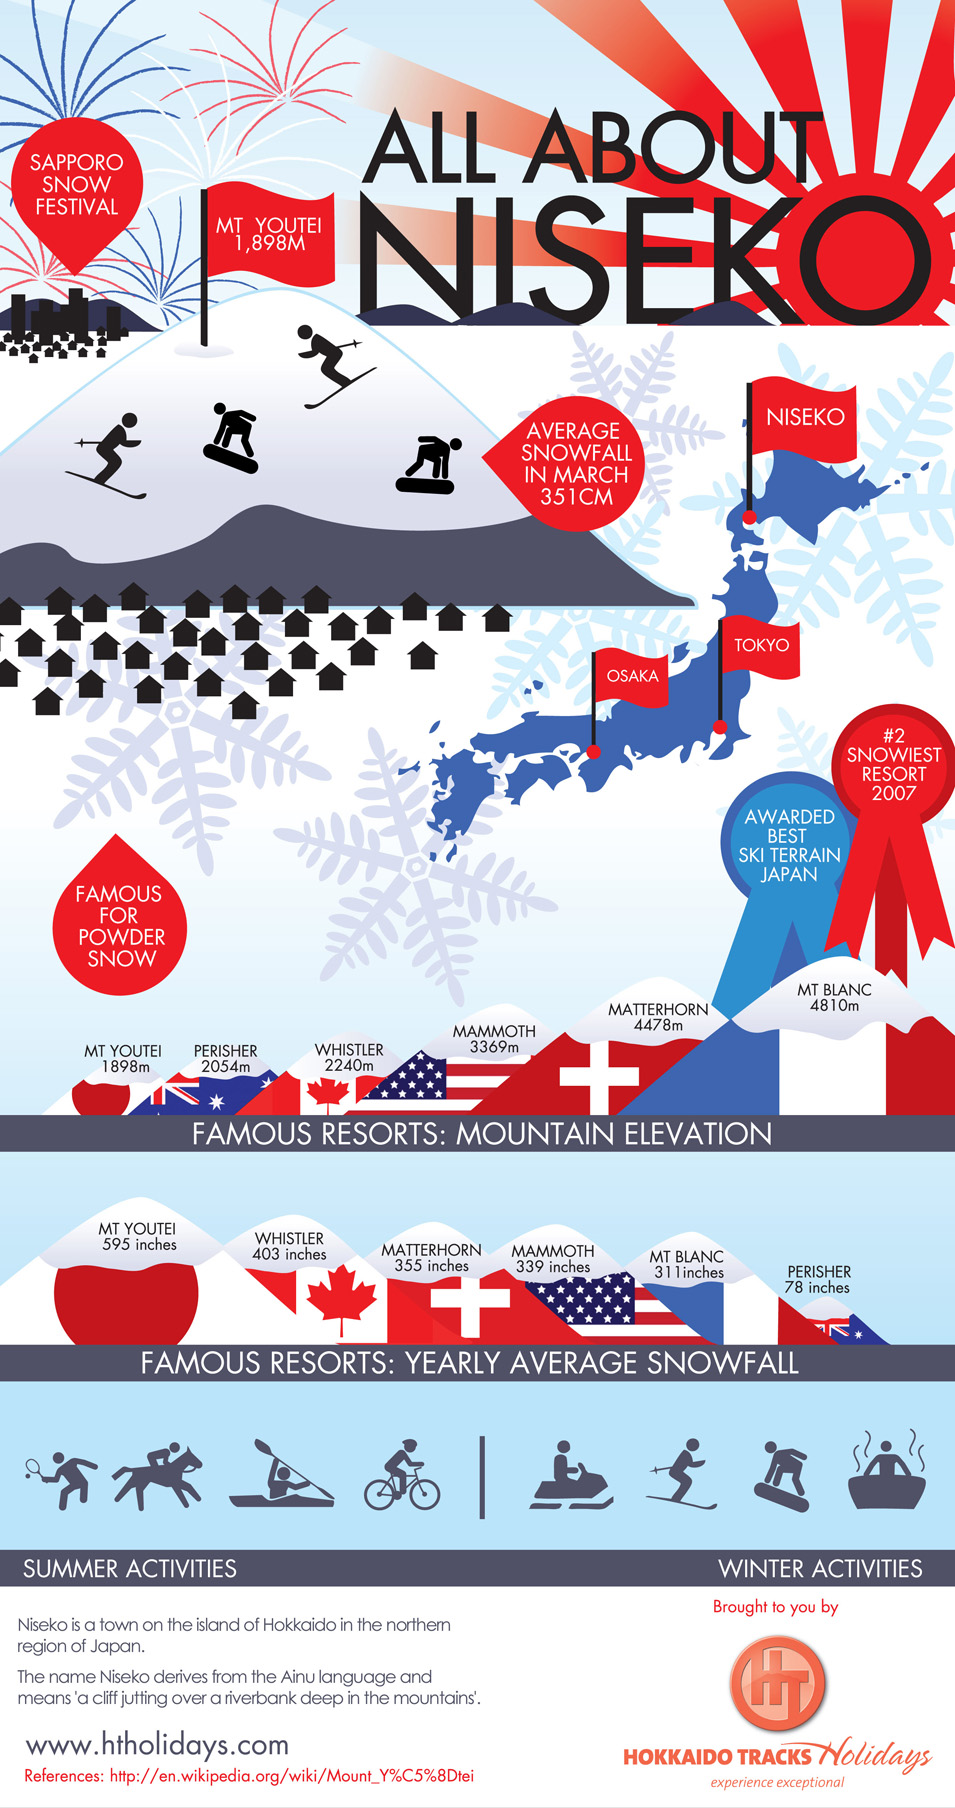 All about the Town of Niseko